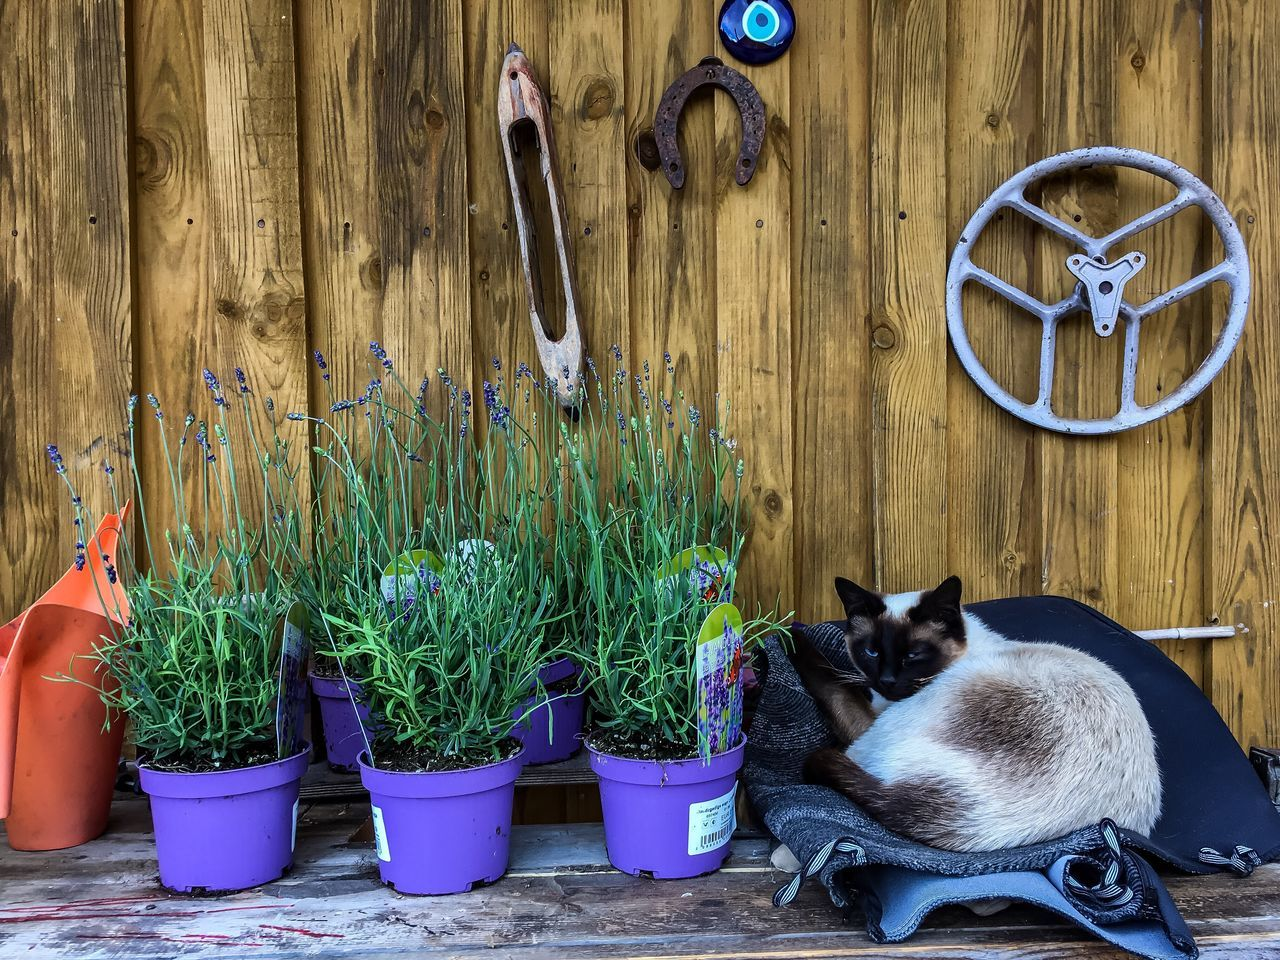 pets, domestic animals, plant, potted plant, animal themes, domestic cat, mammal, no people, one animal, growth, indoors, day